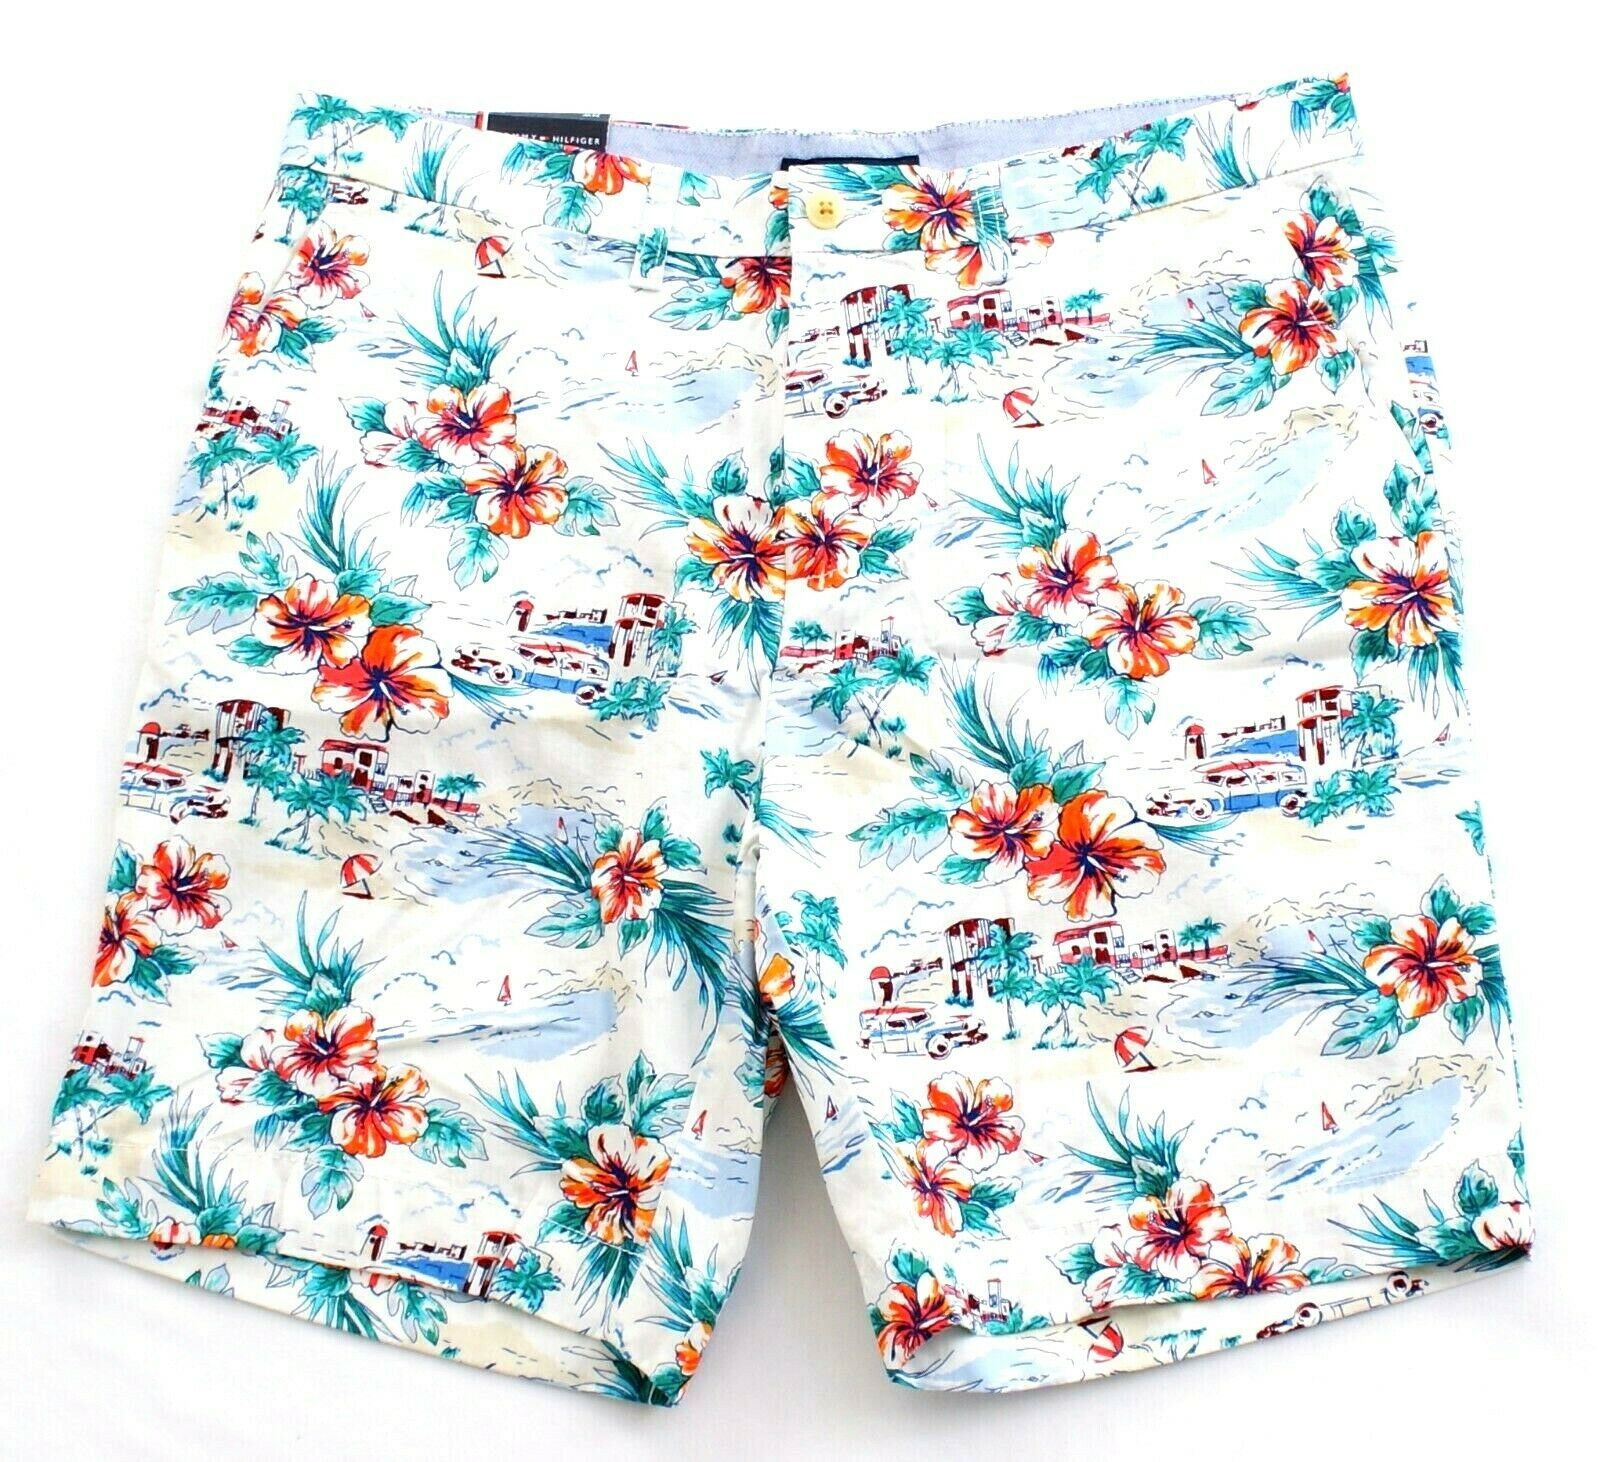 Tommy Hilfiger Tropical Floral Print Flat Front Cotton Shorts Men's NWT